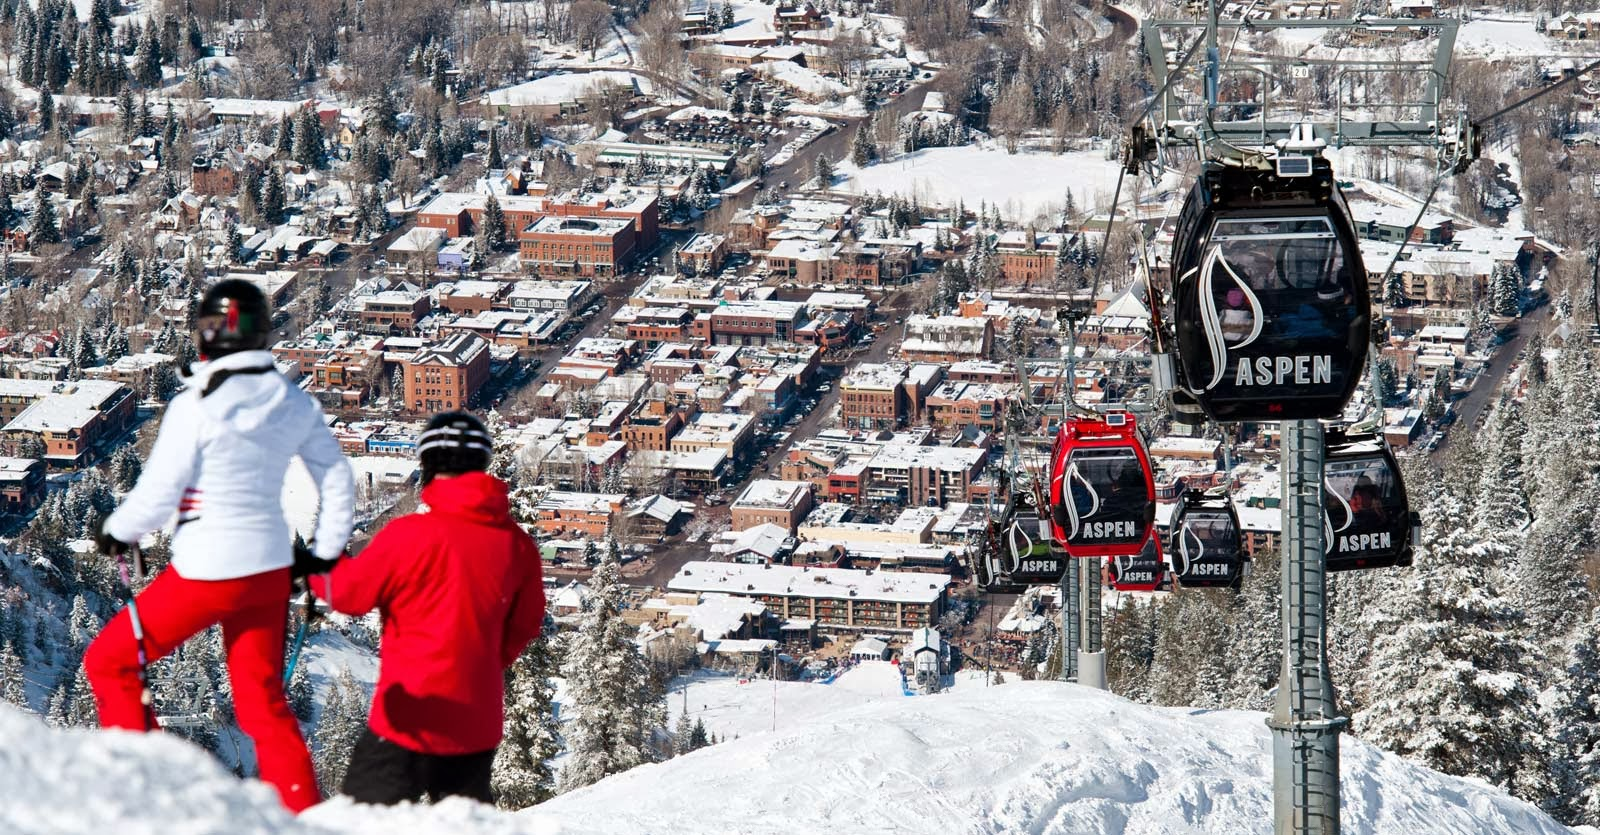 Snowmass at Aspen Colorado  - The Top Ski Resorts for Families In The World